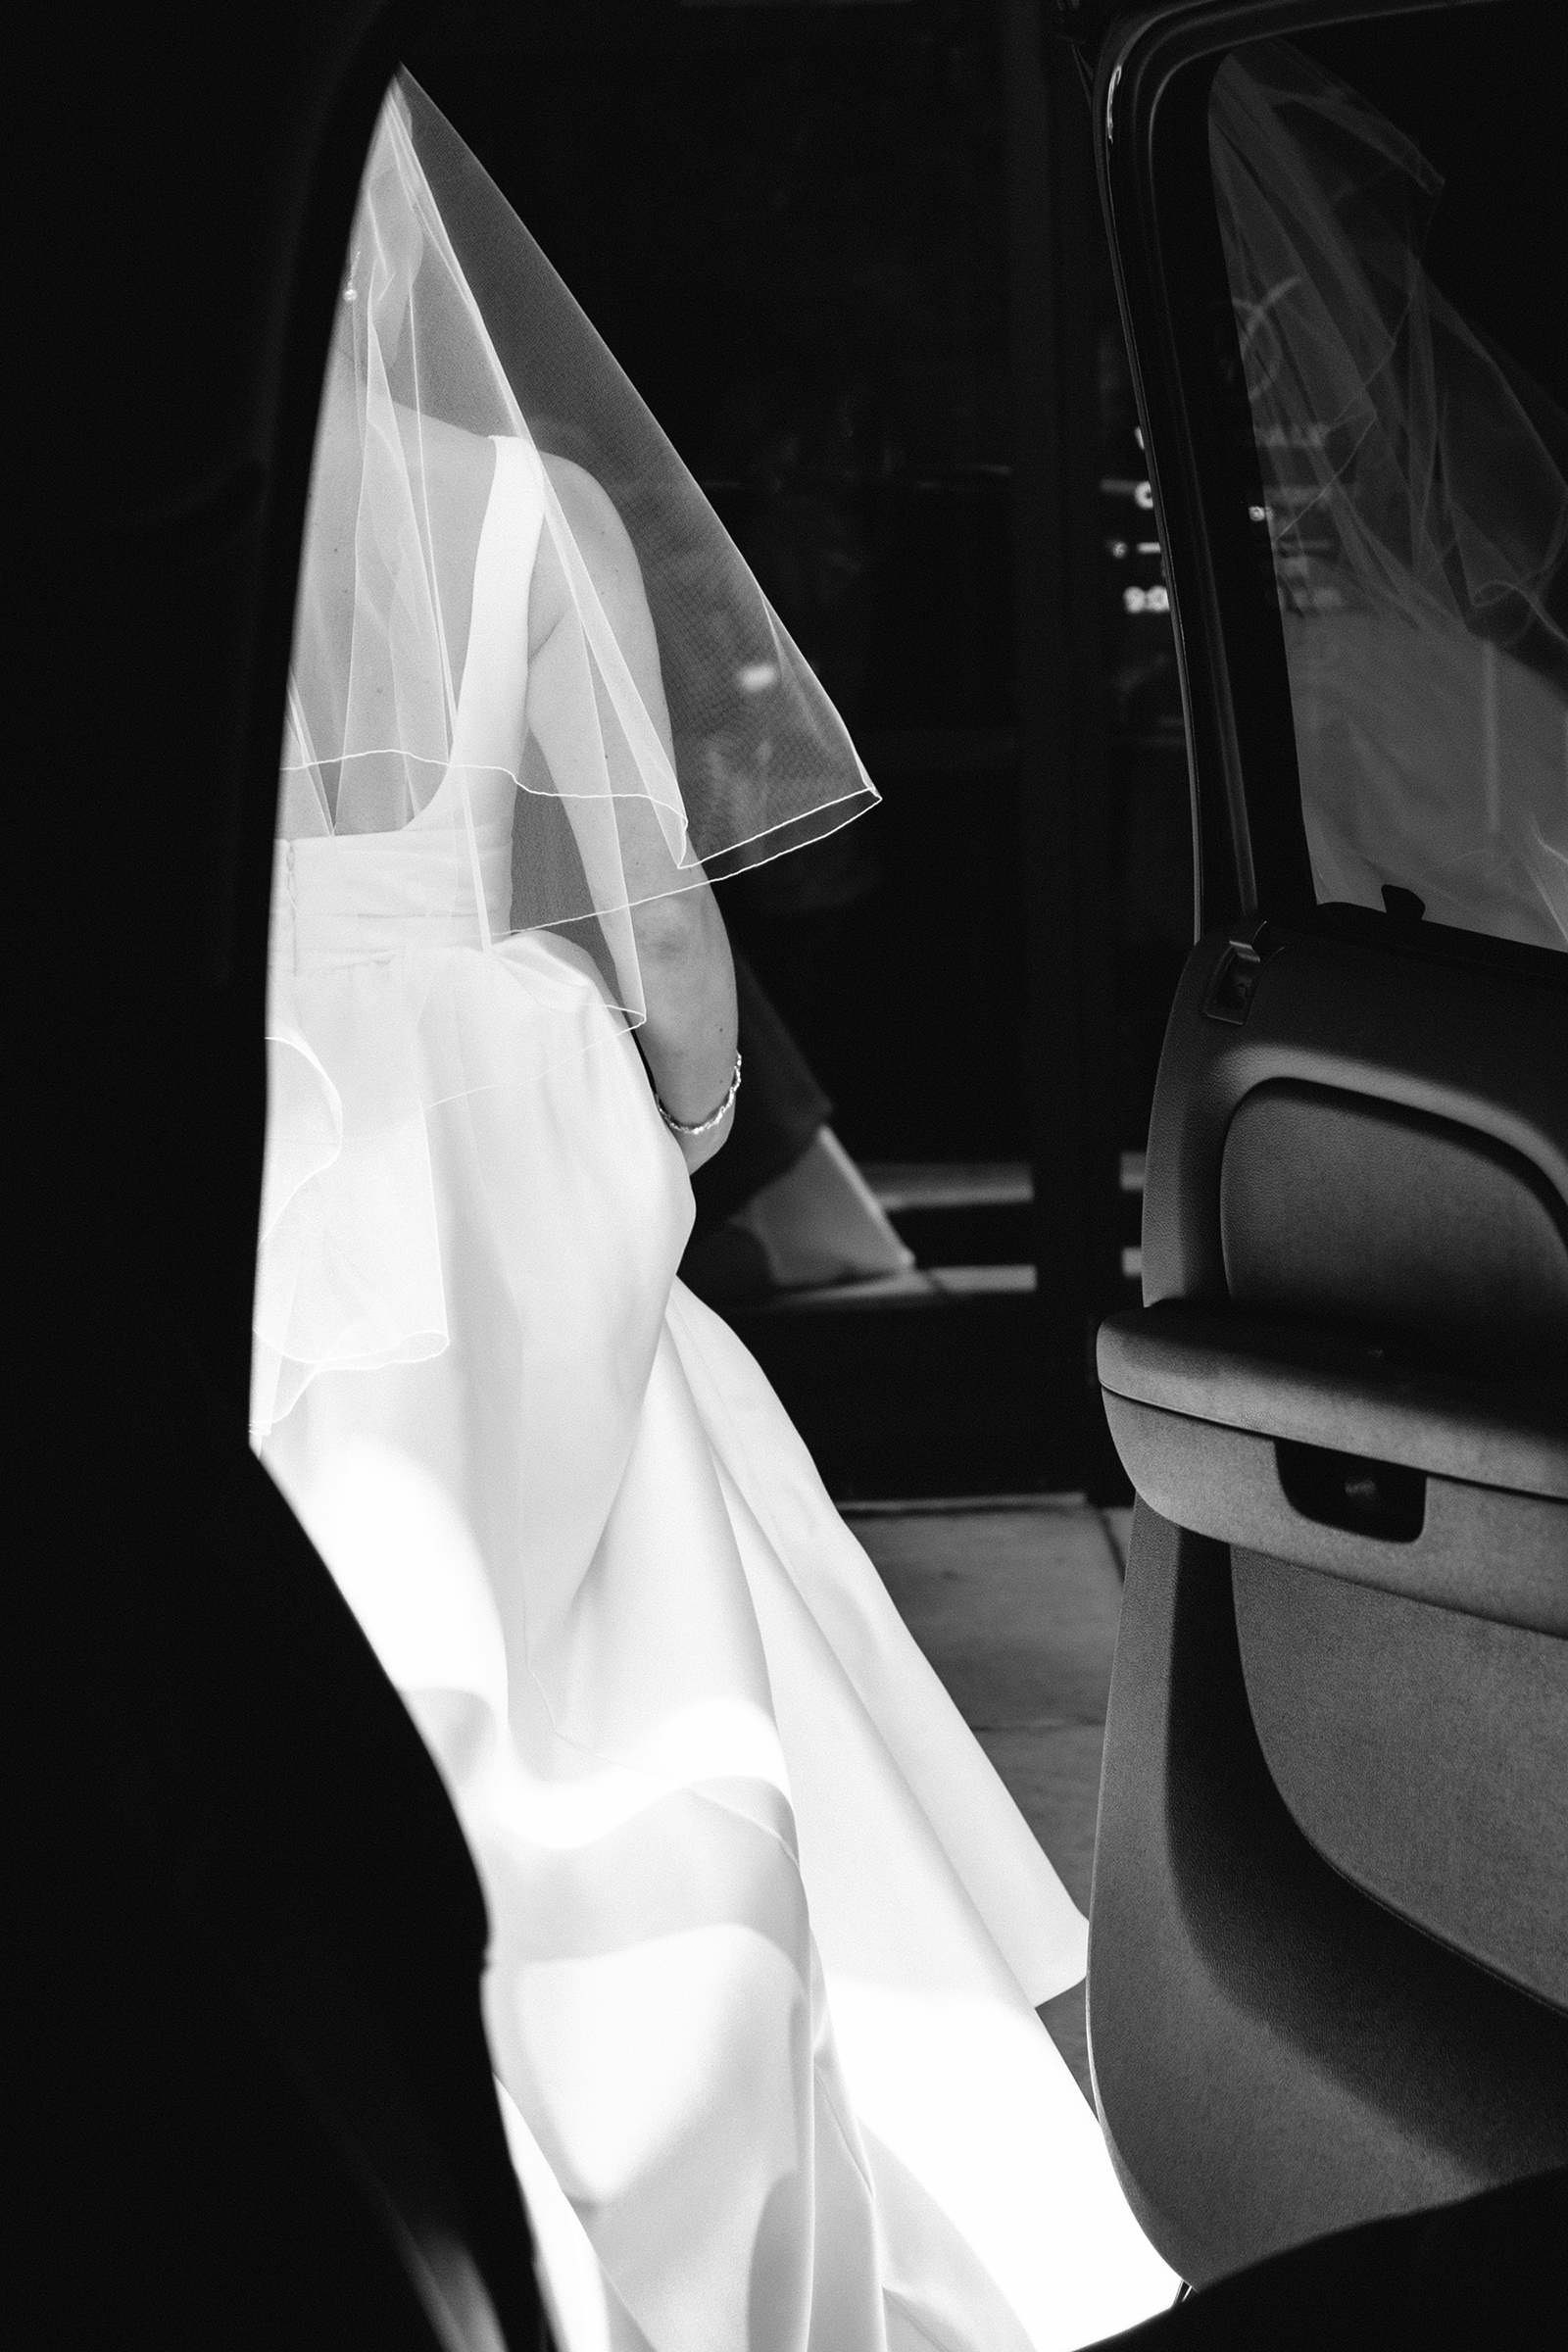 Bride in black and white contrast - photo by Bradley Hanson Photography